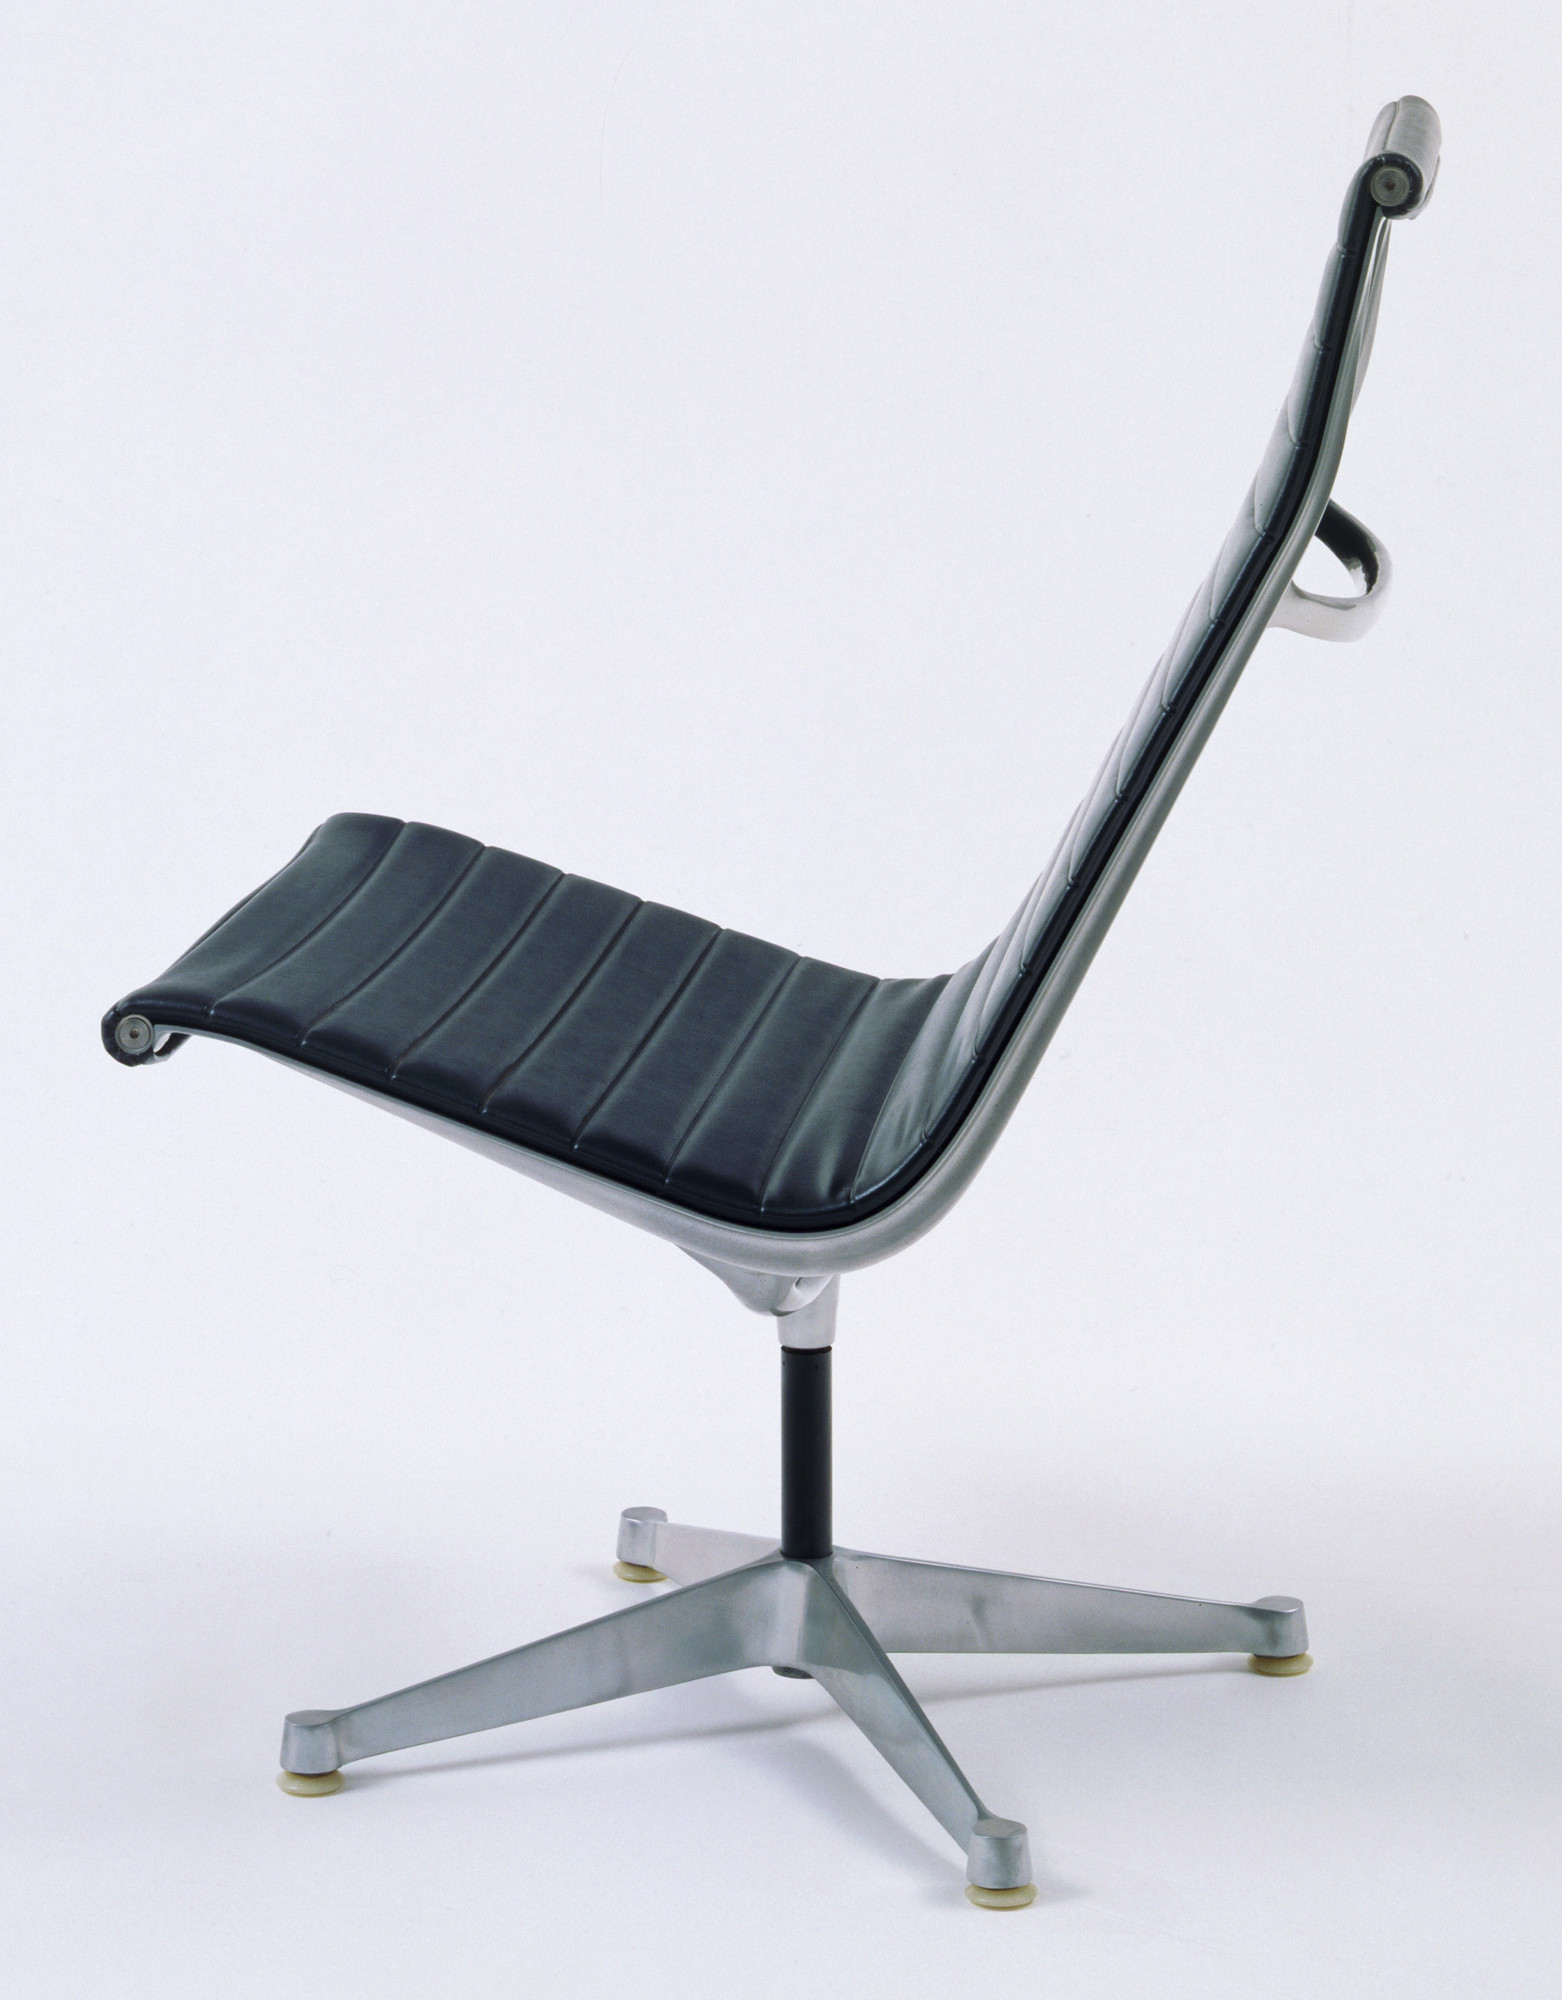 charles eames lounge chair moma eames lounge chair moma new ourso